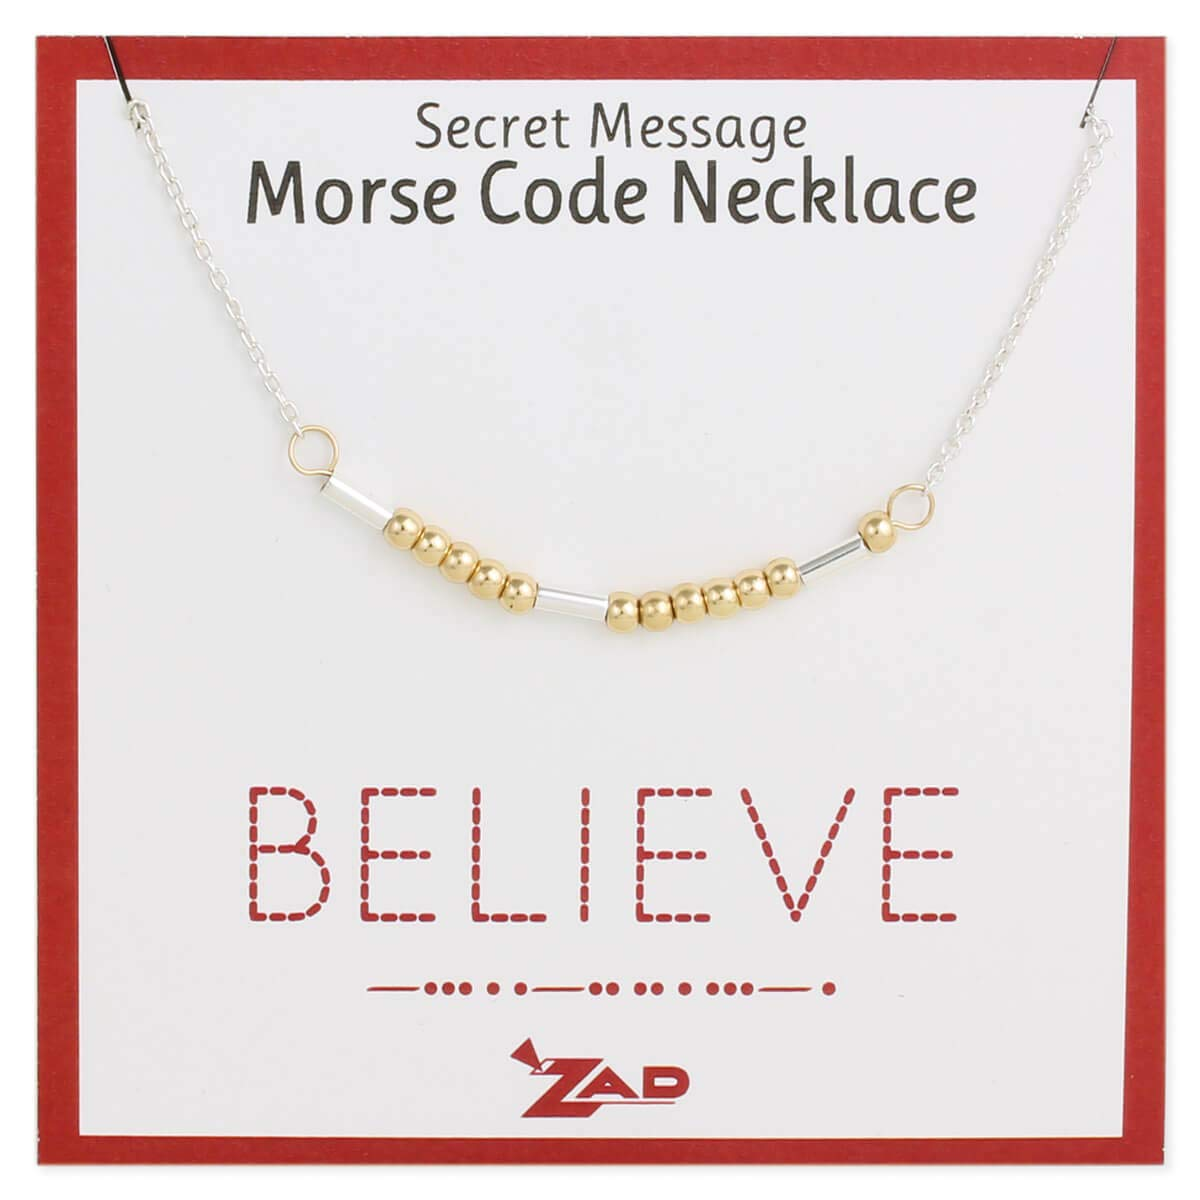 "Zen Styles Morse Code Inspirational Necklace Jewelry 'Strength', Courage', Mother', Love', 'Sister', Believe', Survivor', Two-Tone Adjustable 16""-18"" Inches, Custom Gift Box"